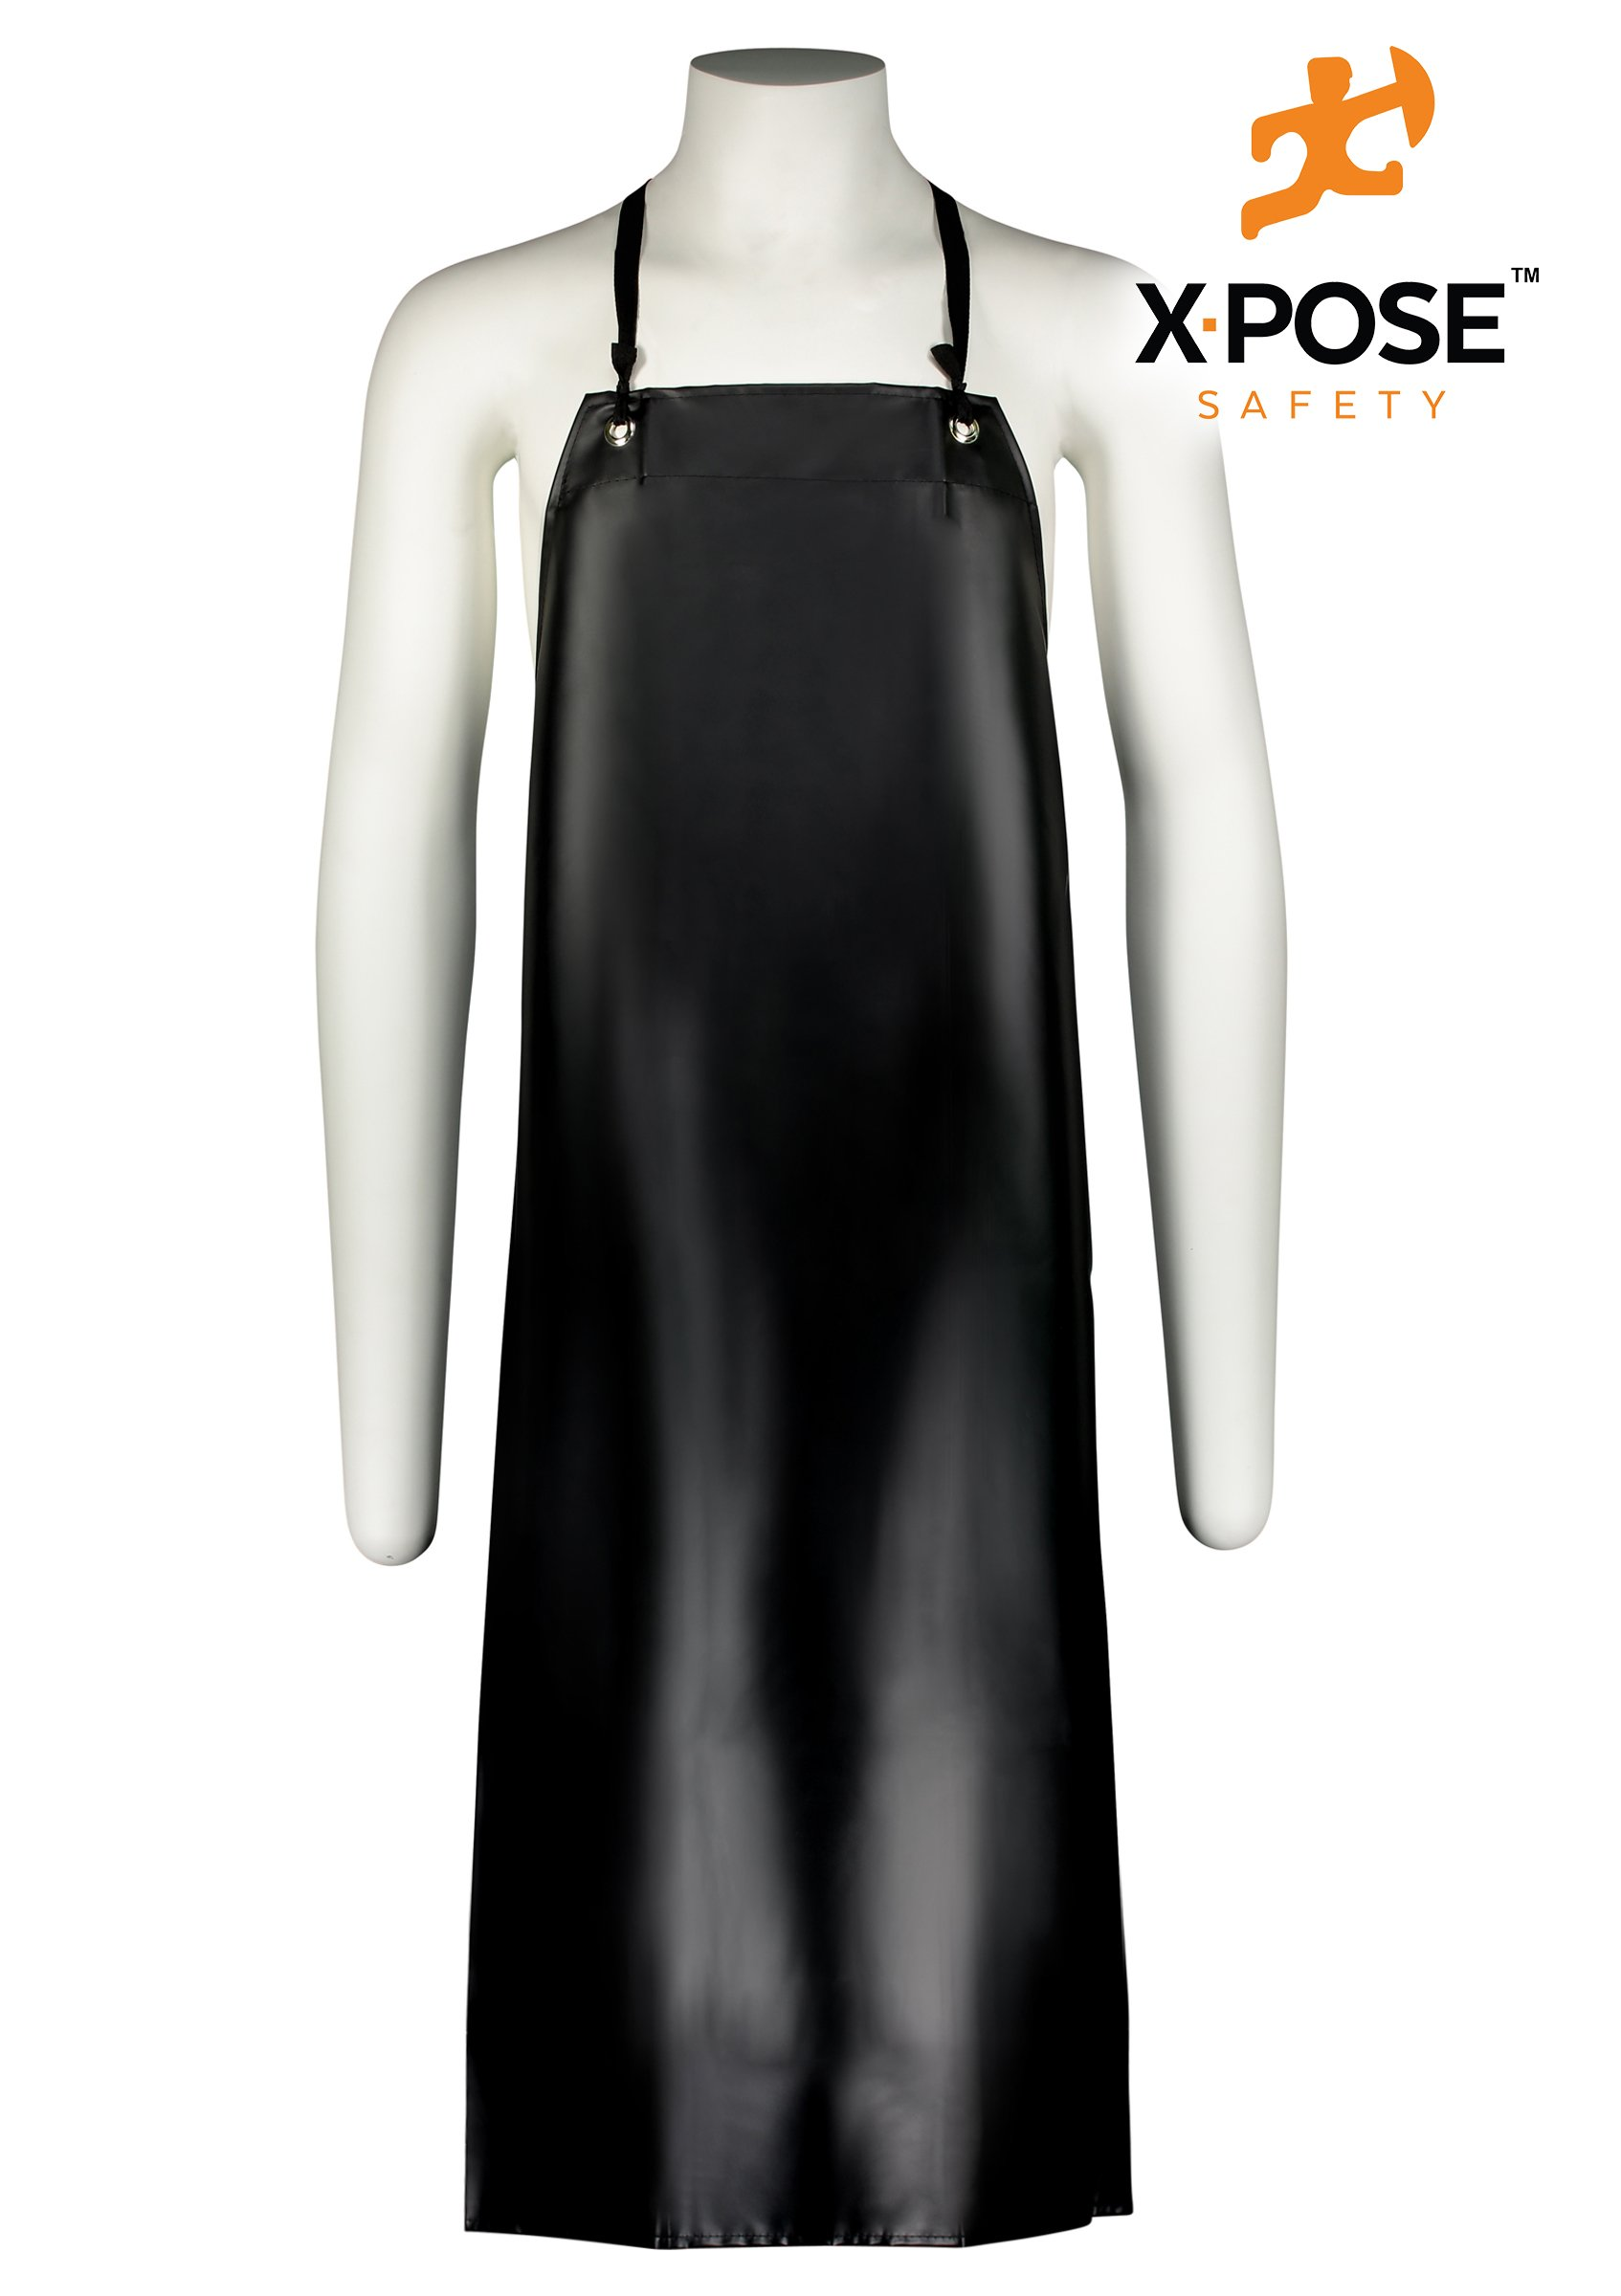 Heavy Duty Vinyl Apron - Industrial Grade Waterproof Material For Ultimate Protection, Lab Work, Meat and Food Service Facilities - by Xpose Safety